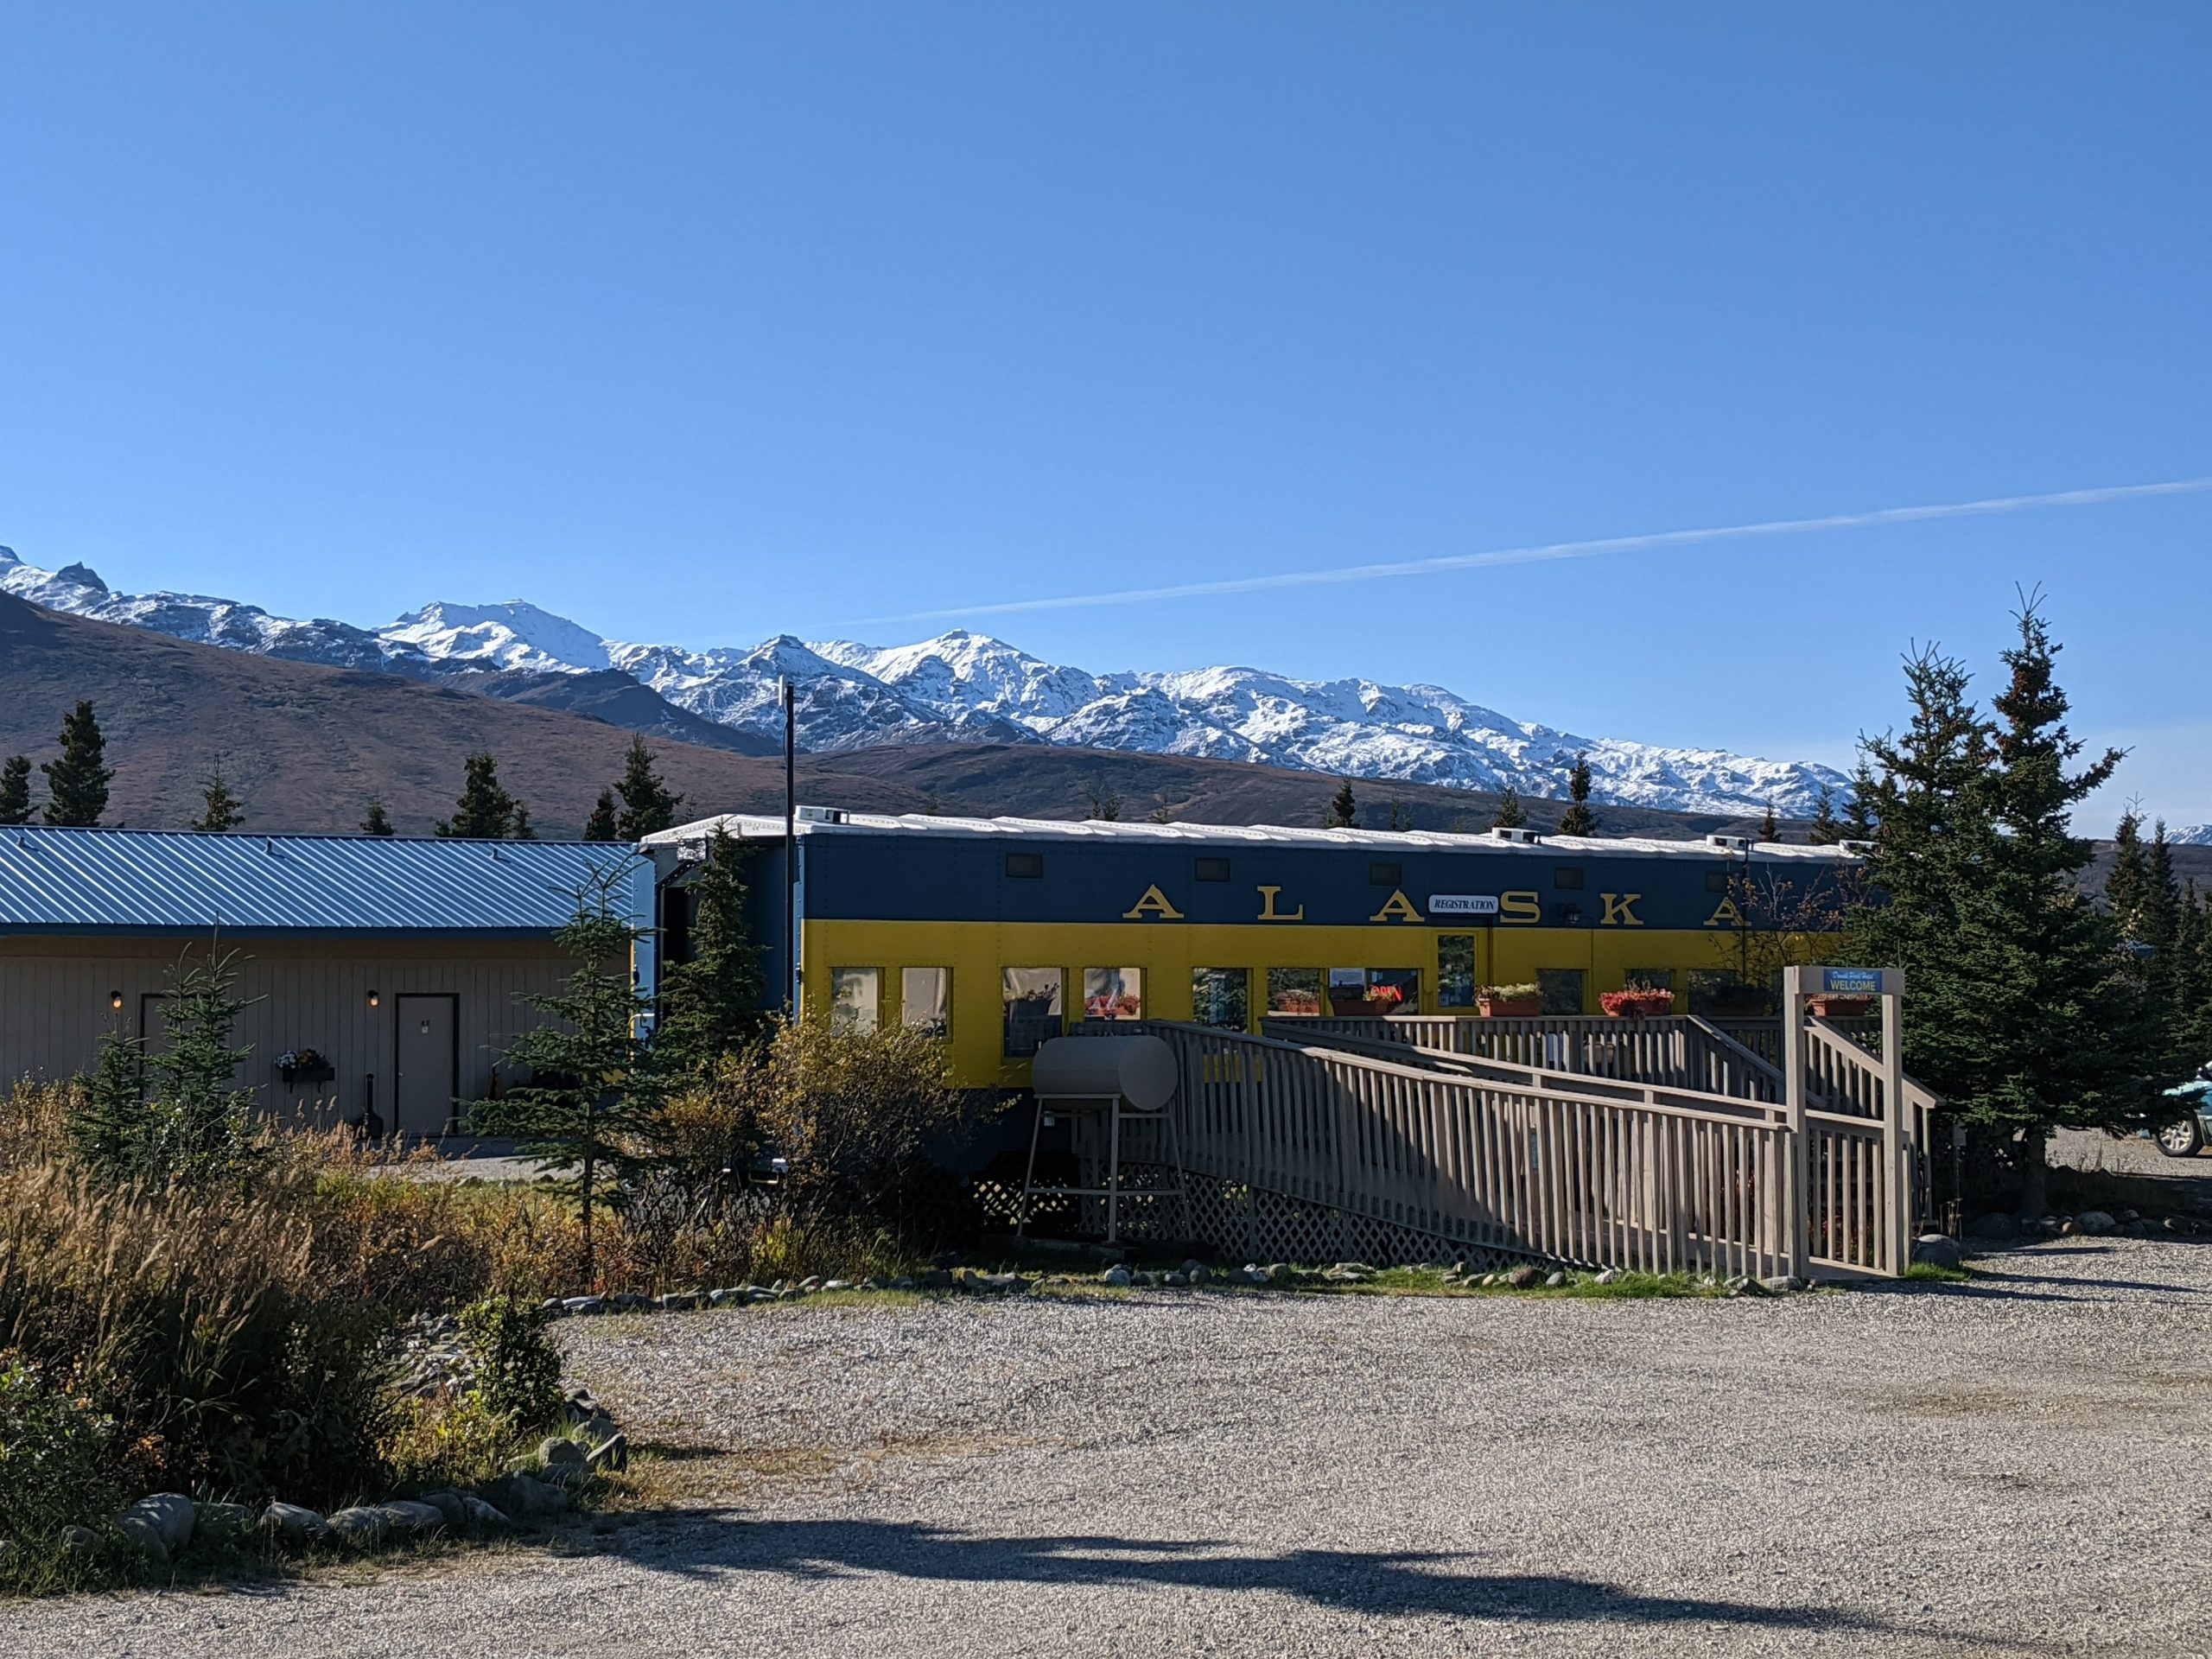 The Old Alaska Railroad car serves as the check in point for the Denali Park Hotel-- a great hotel near Denali.